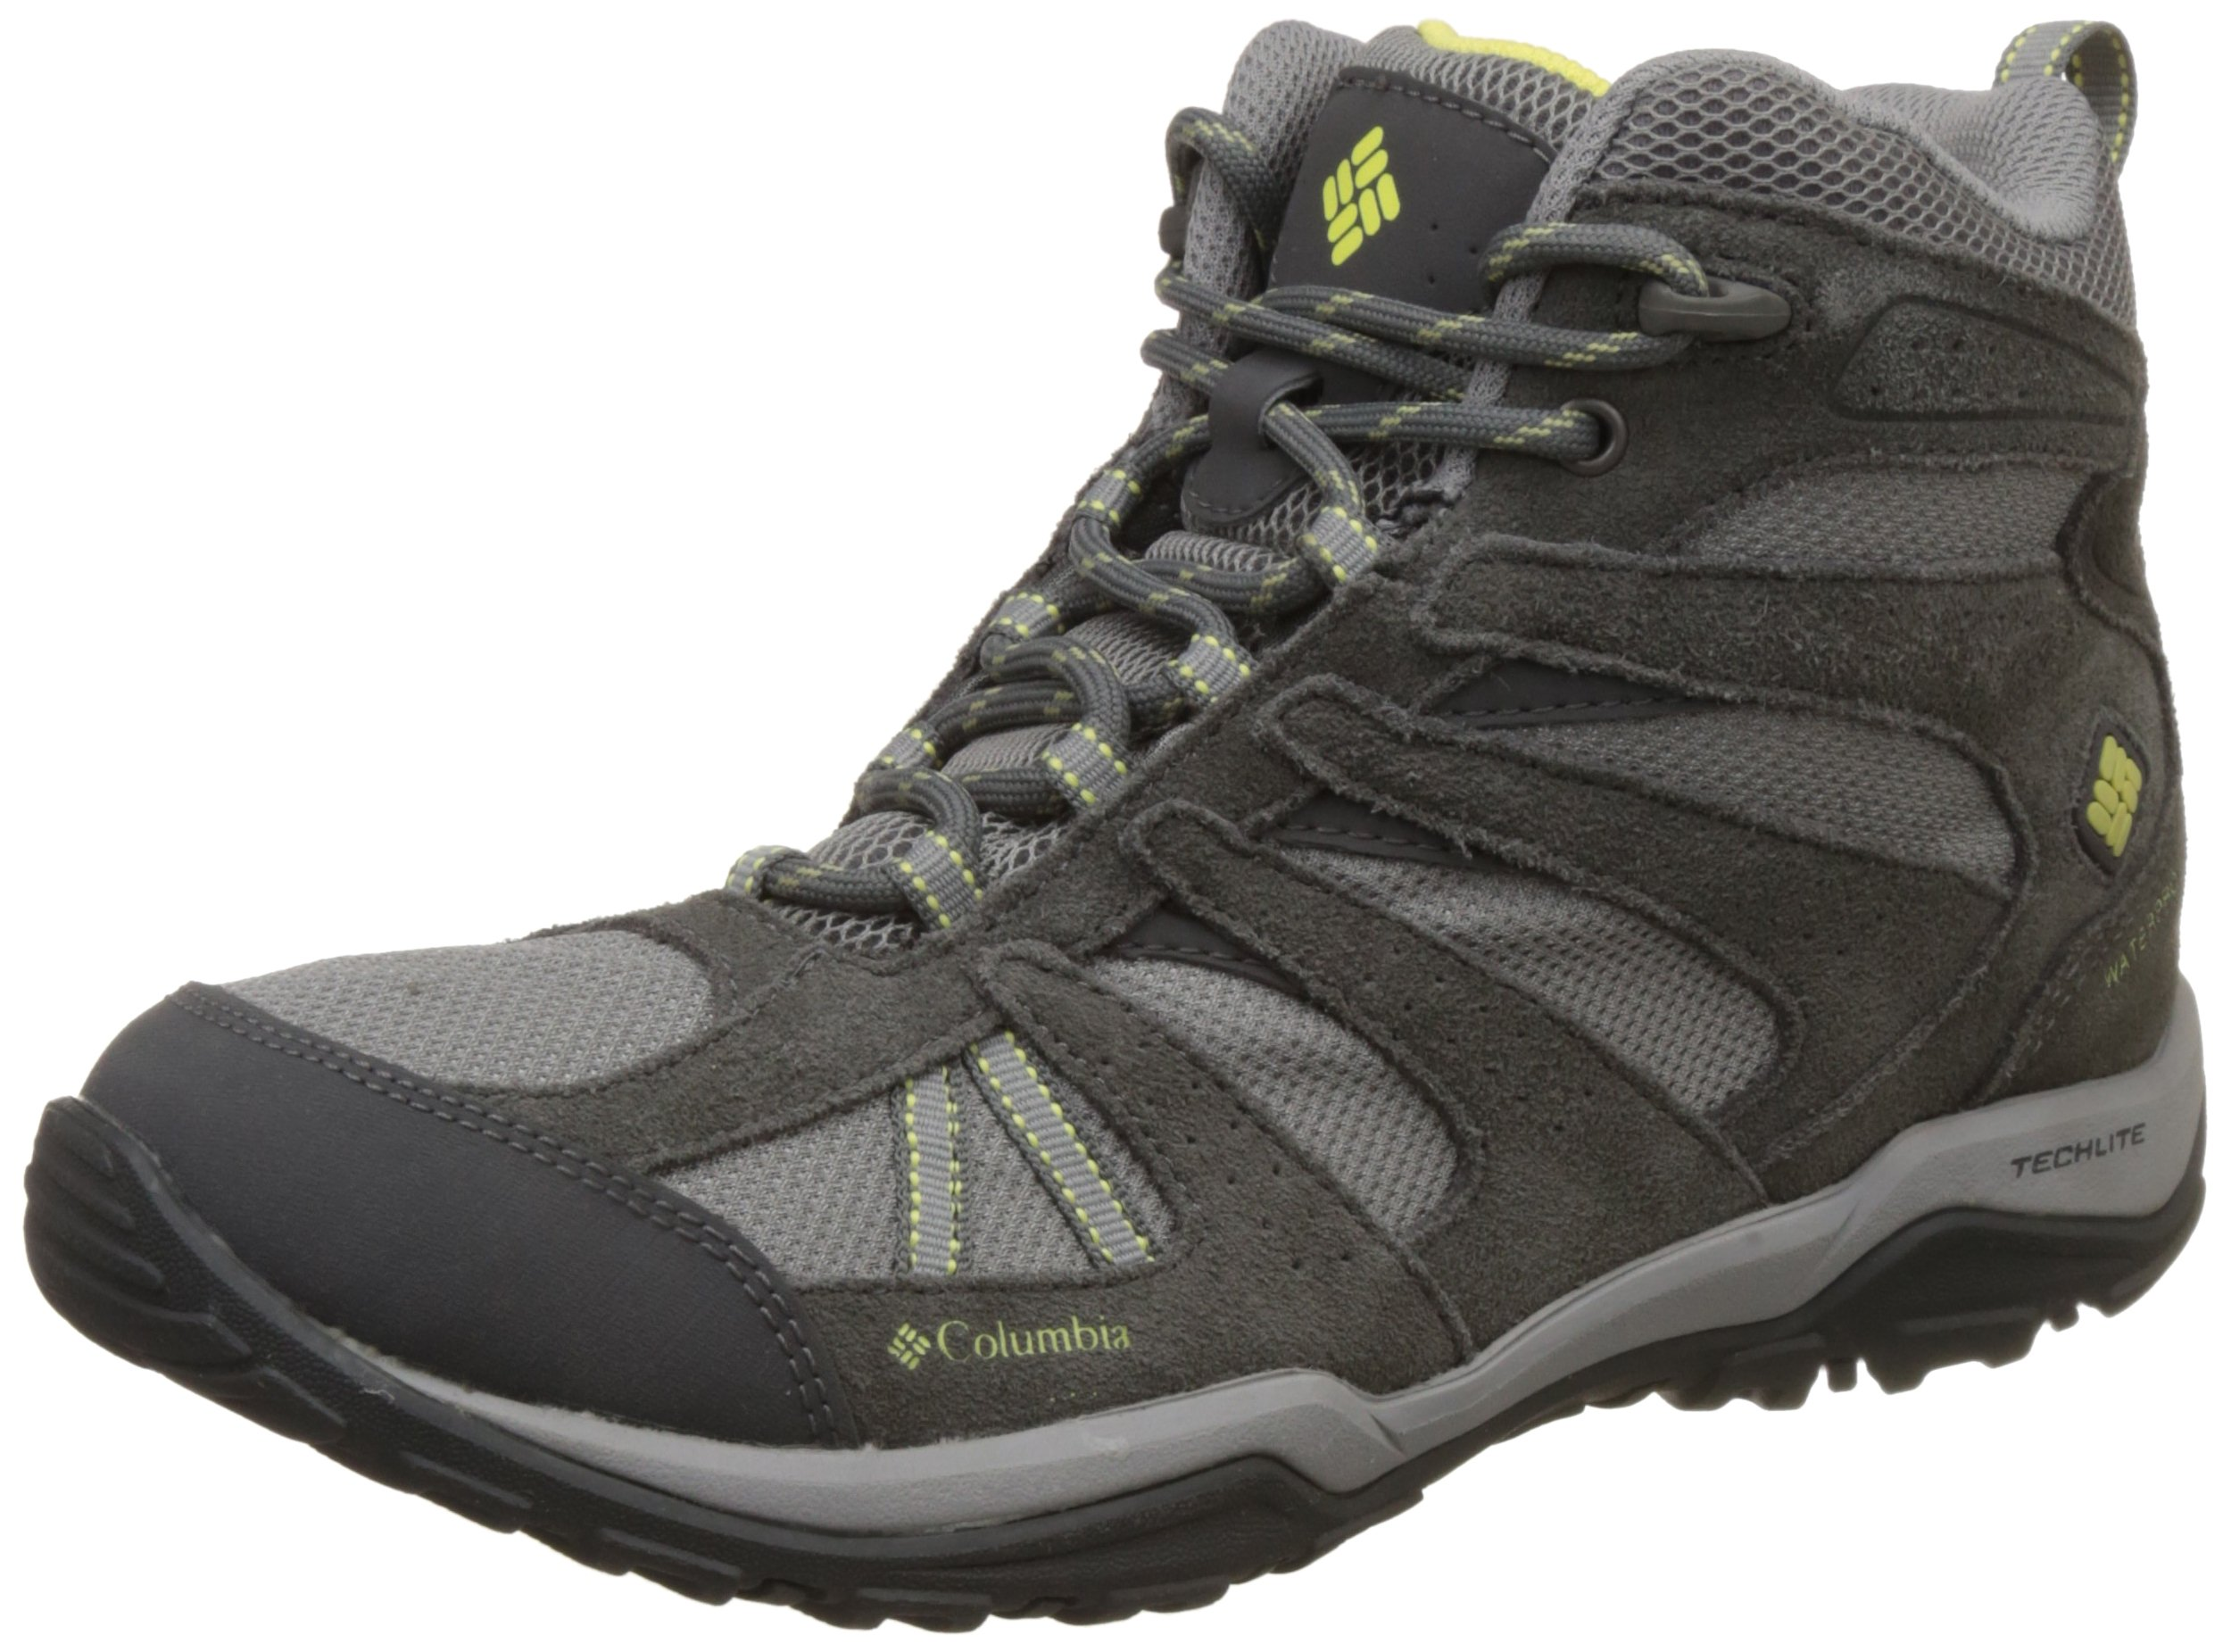 Columbia Women's Dakota Drifter MID Waterproof Hiking Boot, Light Grey, Sunnyside, 6 B US by Columbia